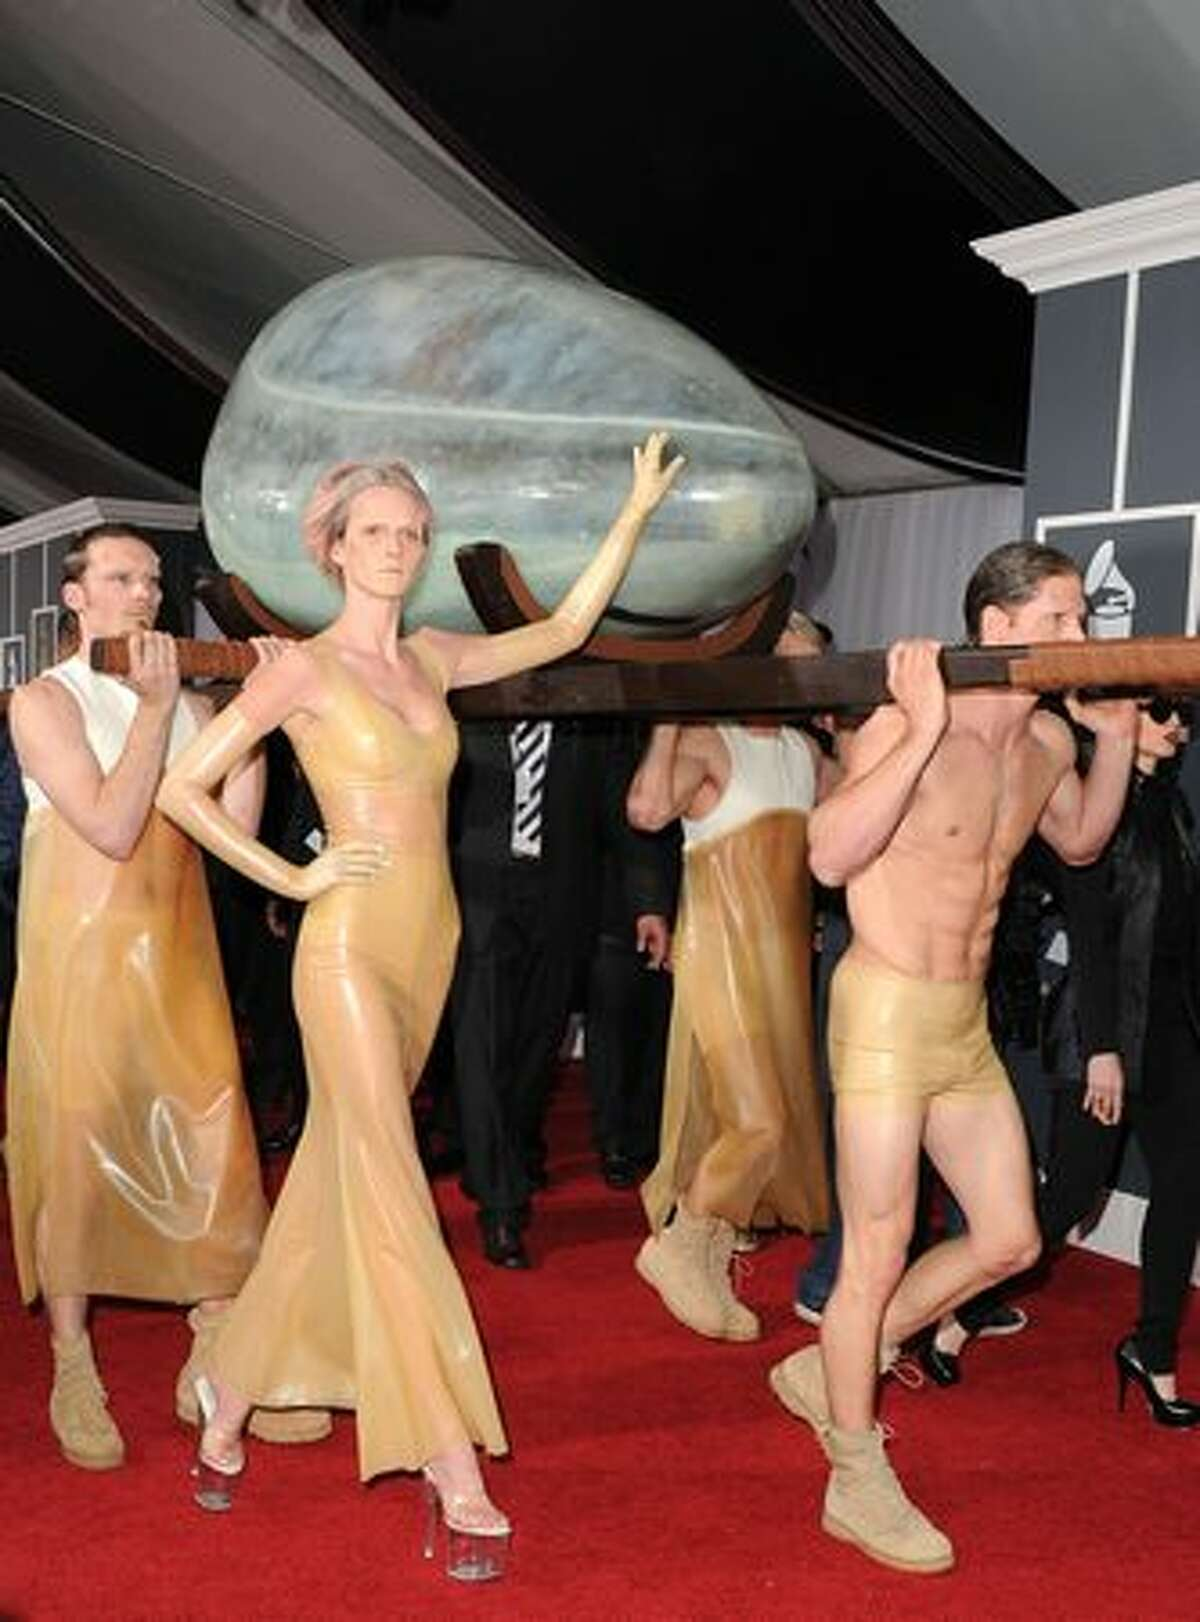 We included Lady Gaga (inside her egg) in this compilation because, even though you can't see her, she's redefining what it means to make a red-carpet entrance. Besides, we think the egg is attractive, and the egg bearers -- and the willowy caretaker at center -- enhance the overall effect. Well played, Gaga.